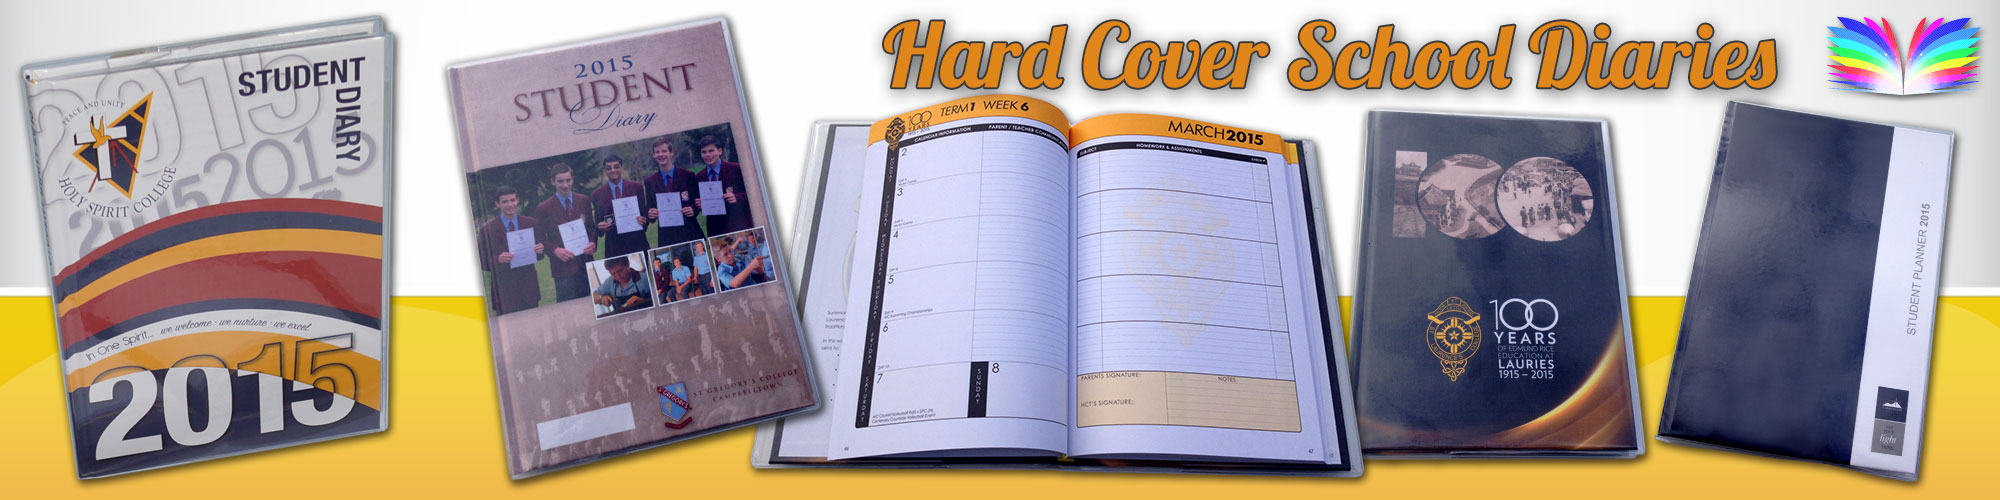 Hard-Cover-School-Diaries-Diary-Design